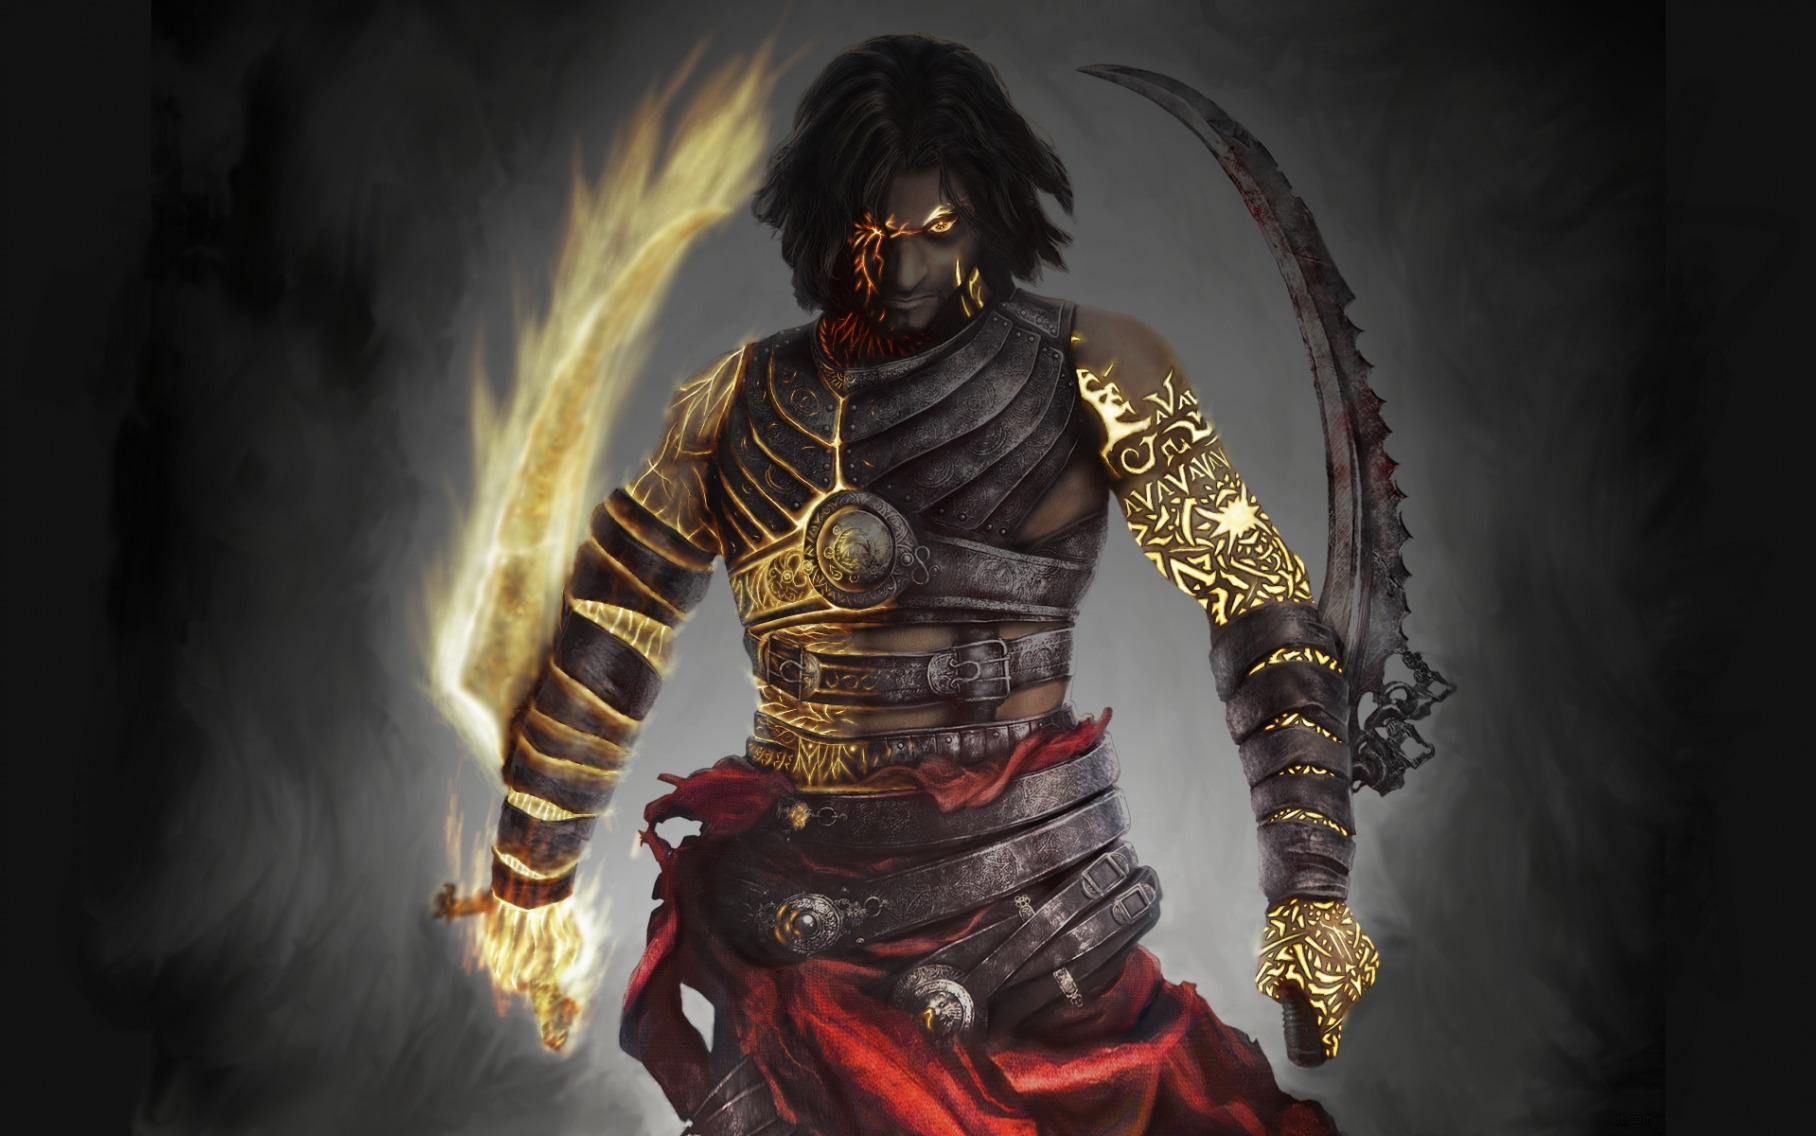 Prince of persia warrior within henti wallpapers anime photos